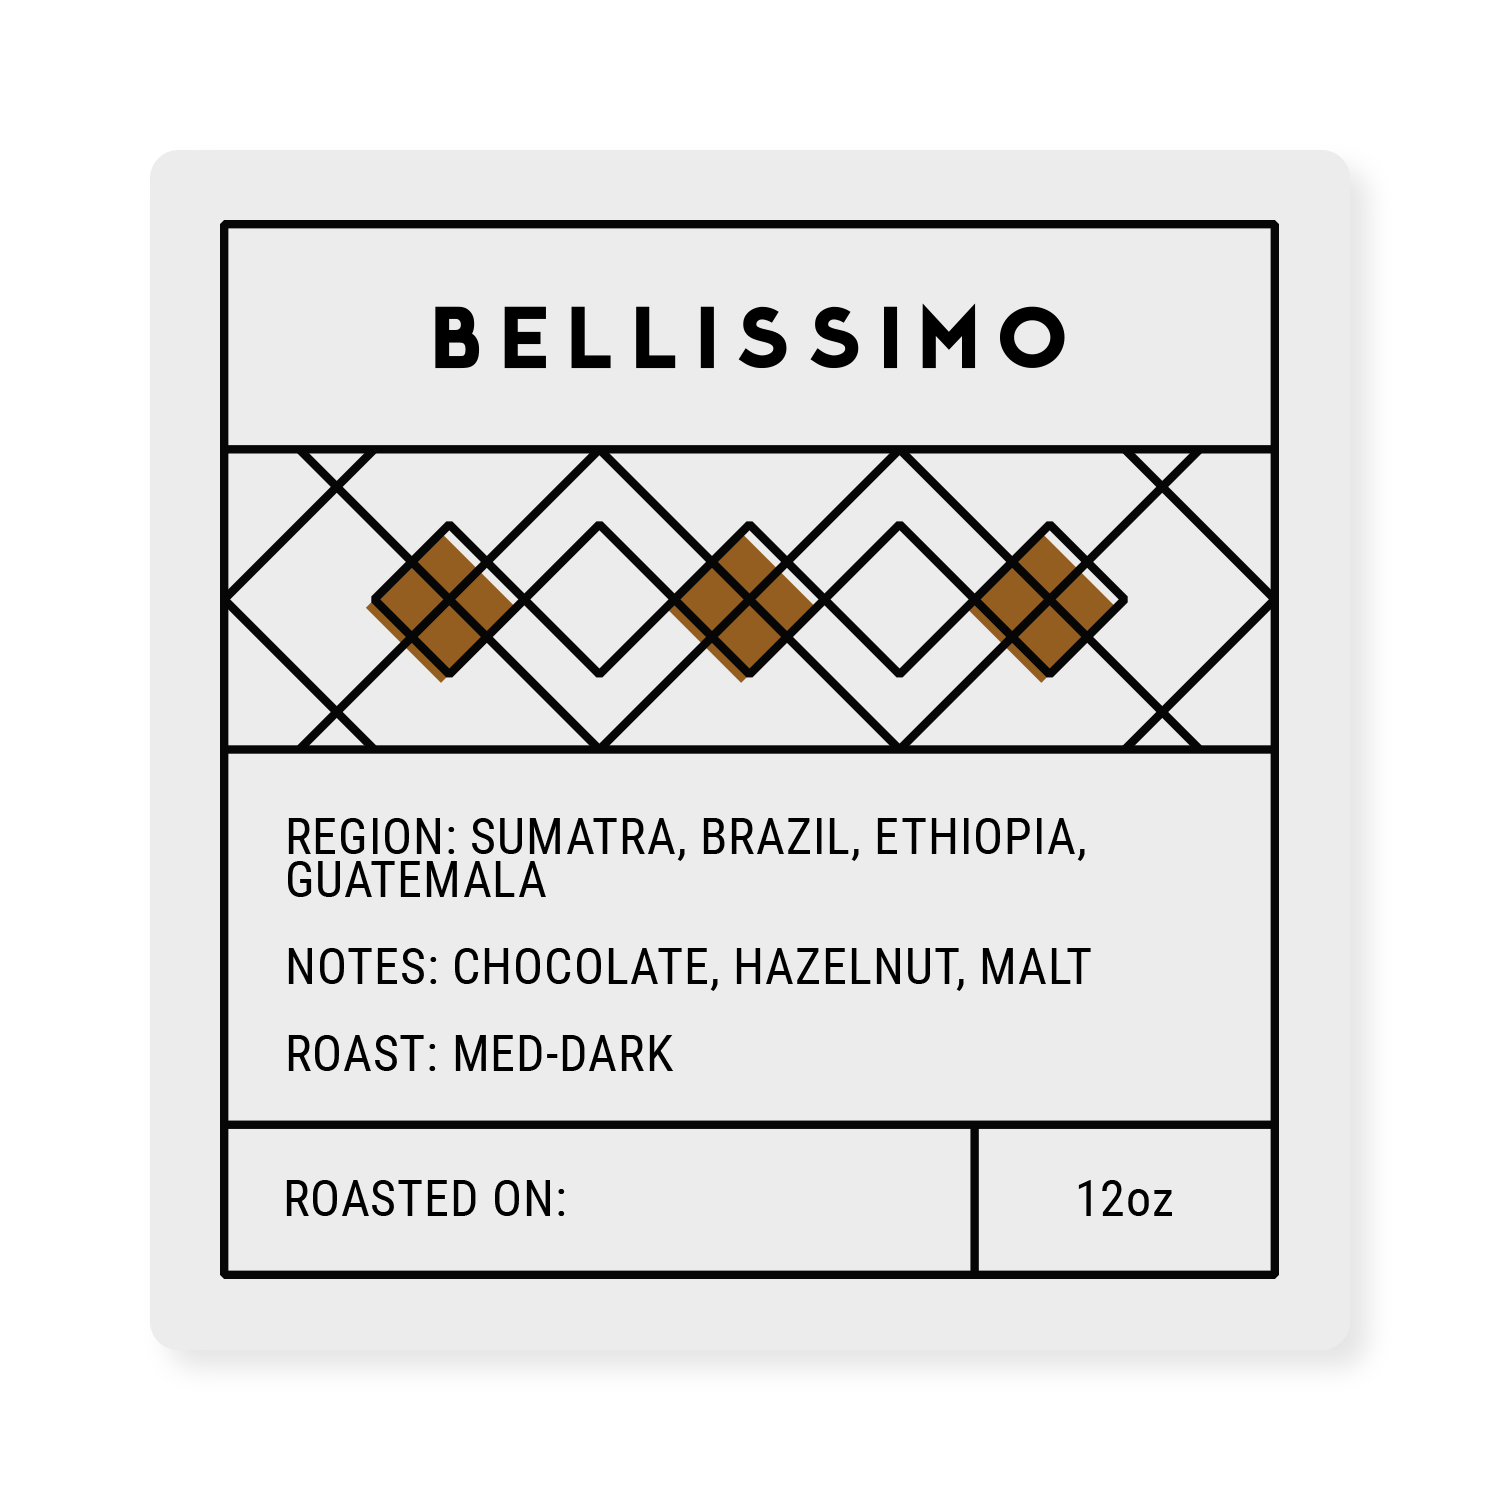 Bello Bellissimo Product Description.